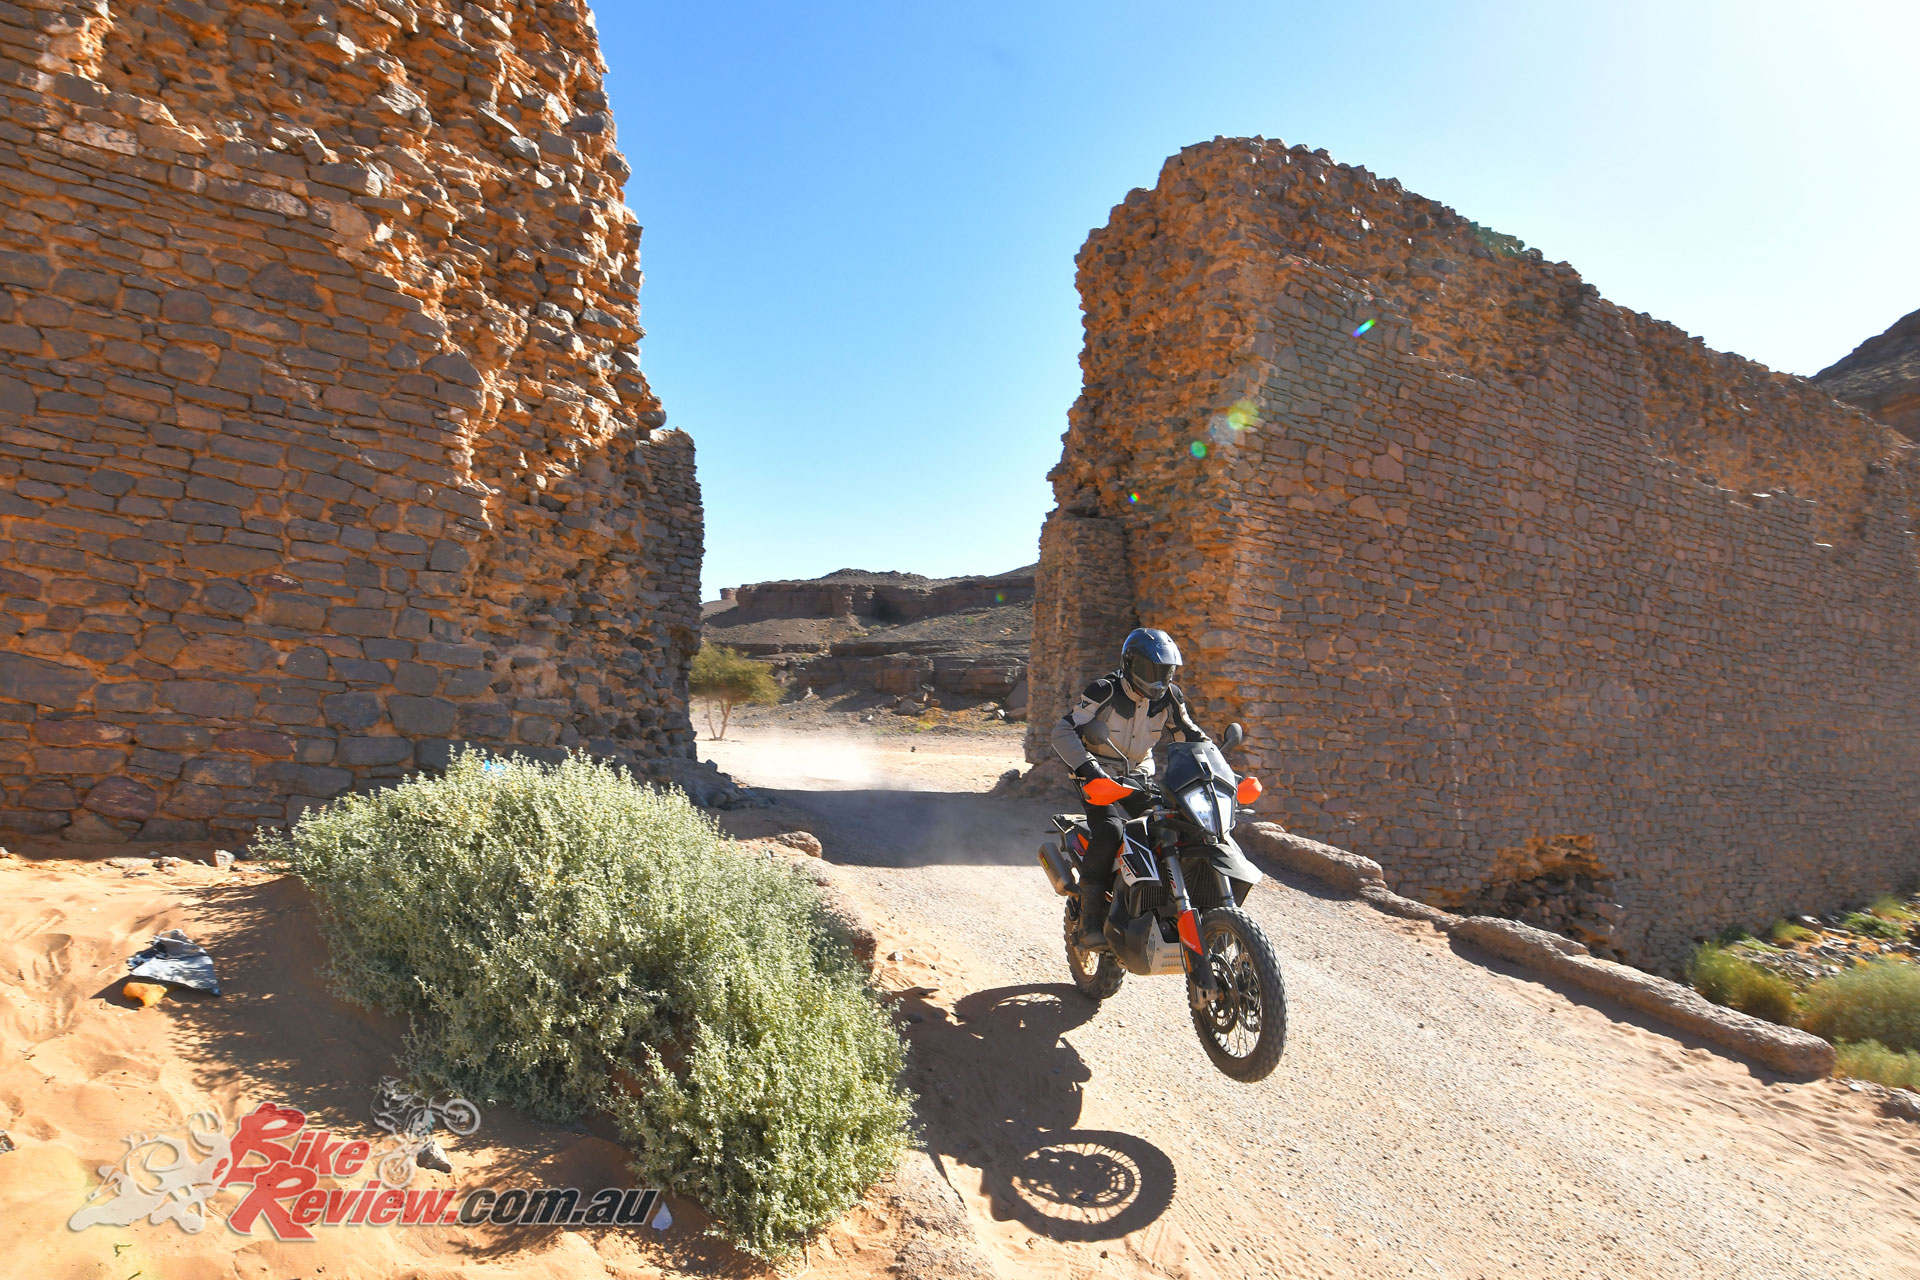 2019 KTM 790 Adventure R - Offering 94bhp at 8000rpm, and 89Nm at 6600rpm